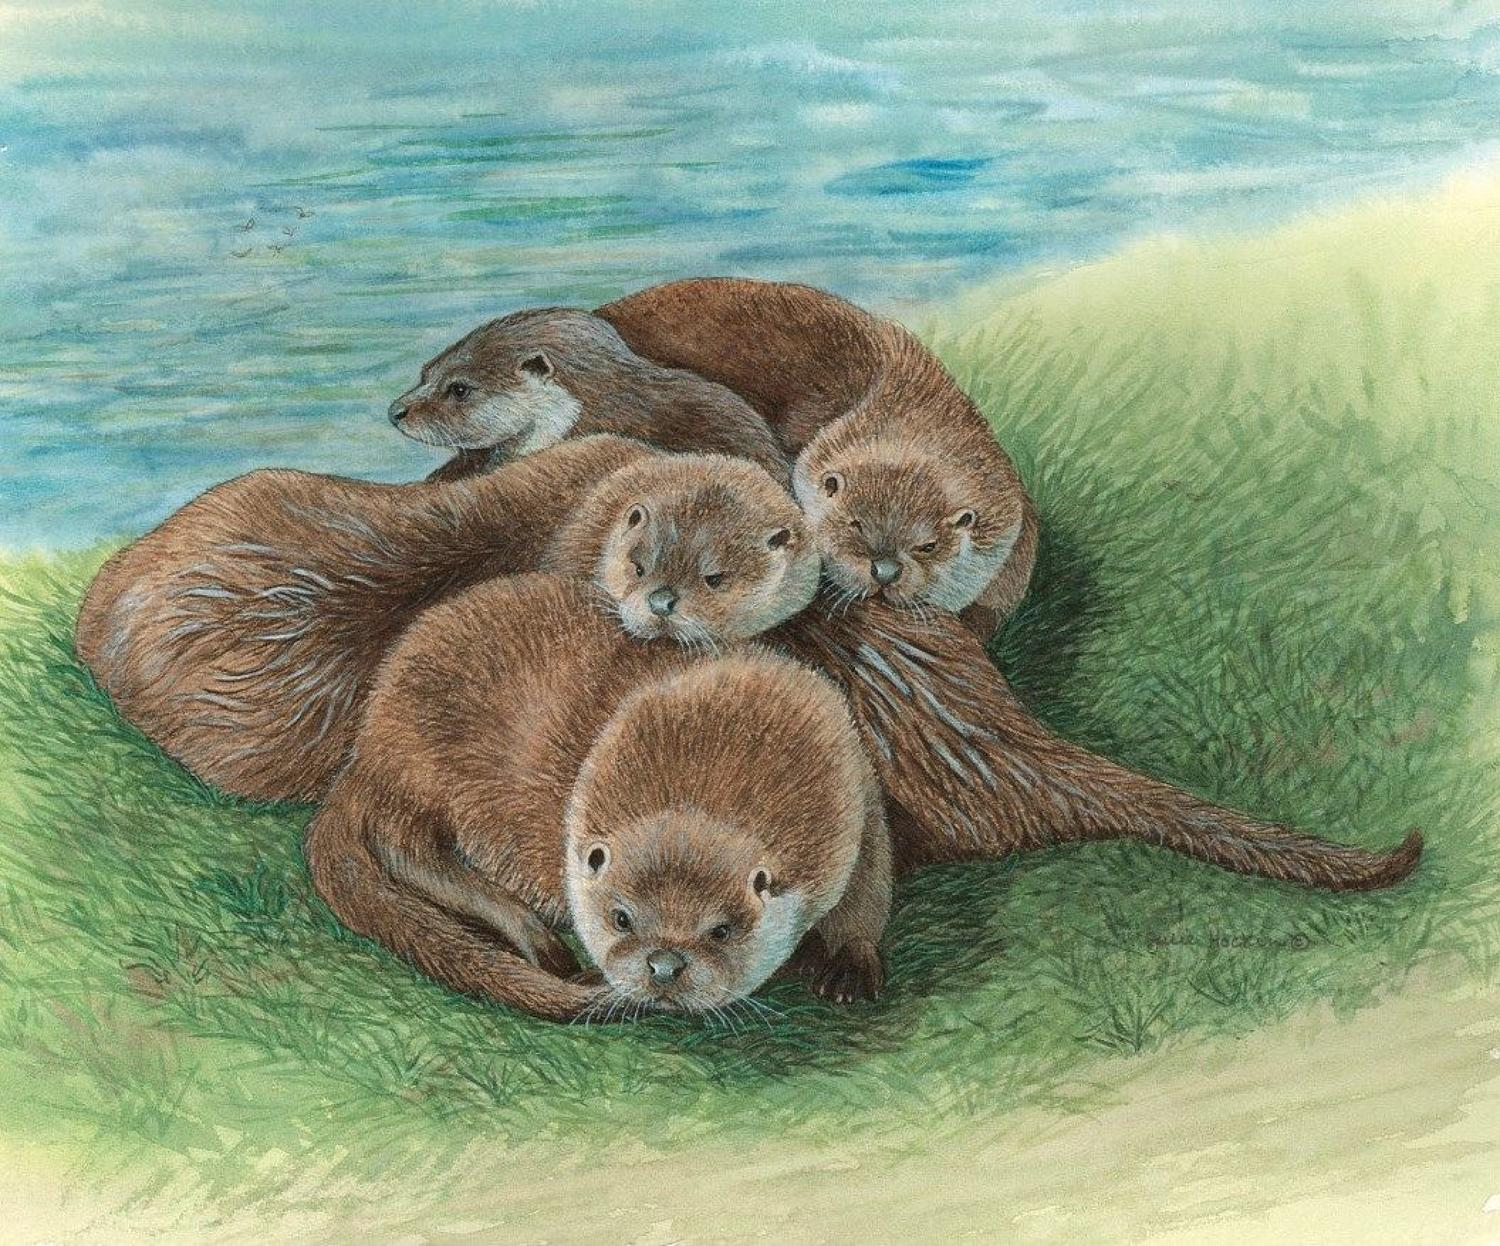 Glasses Cleaning Cloth - Tangle of Otters